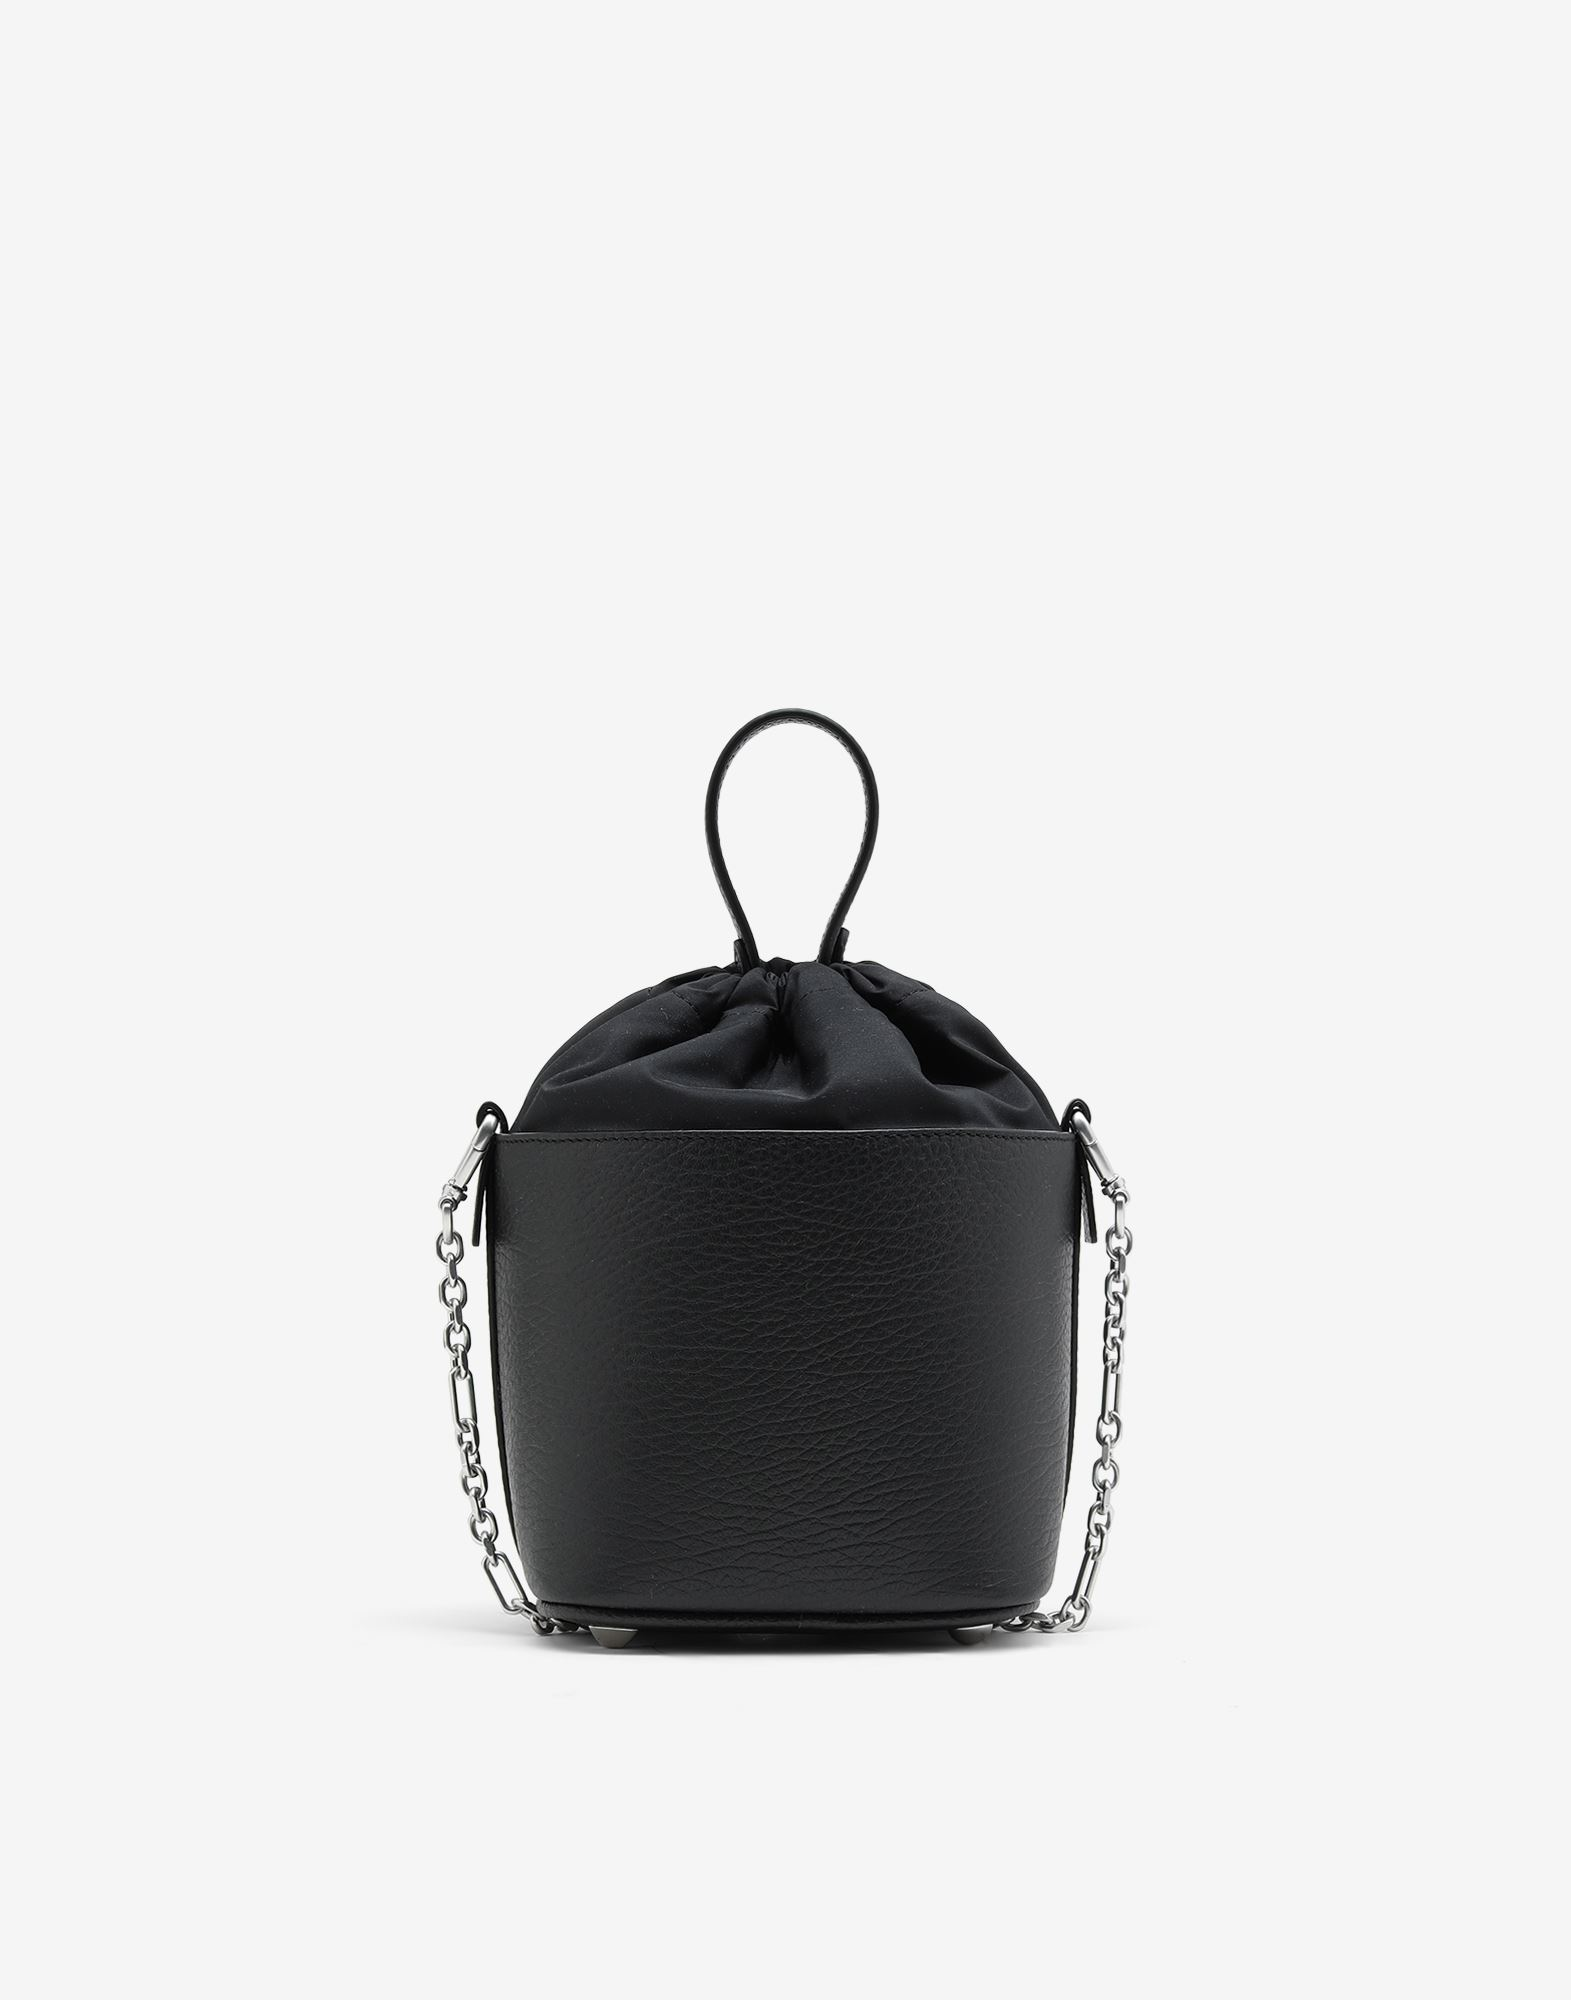 MAISON MARGIELA Textured leather bucket bag Shoulder bag Woman d